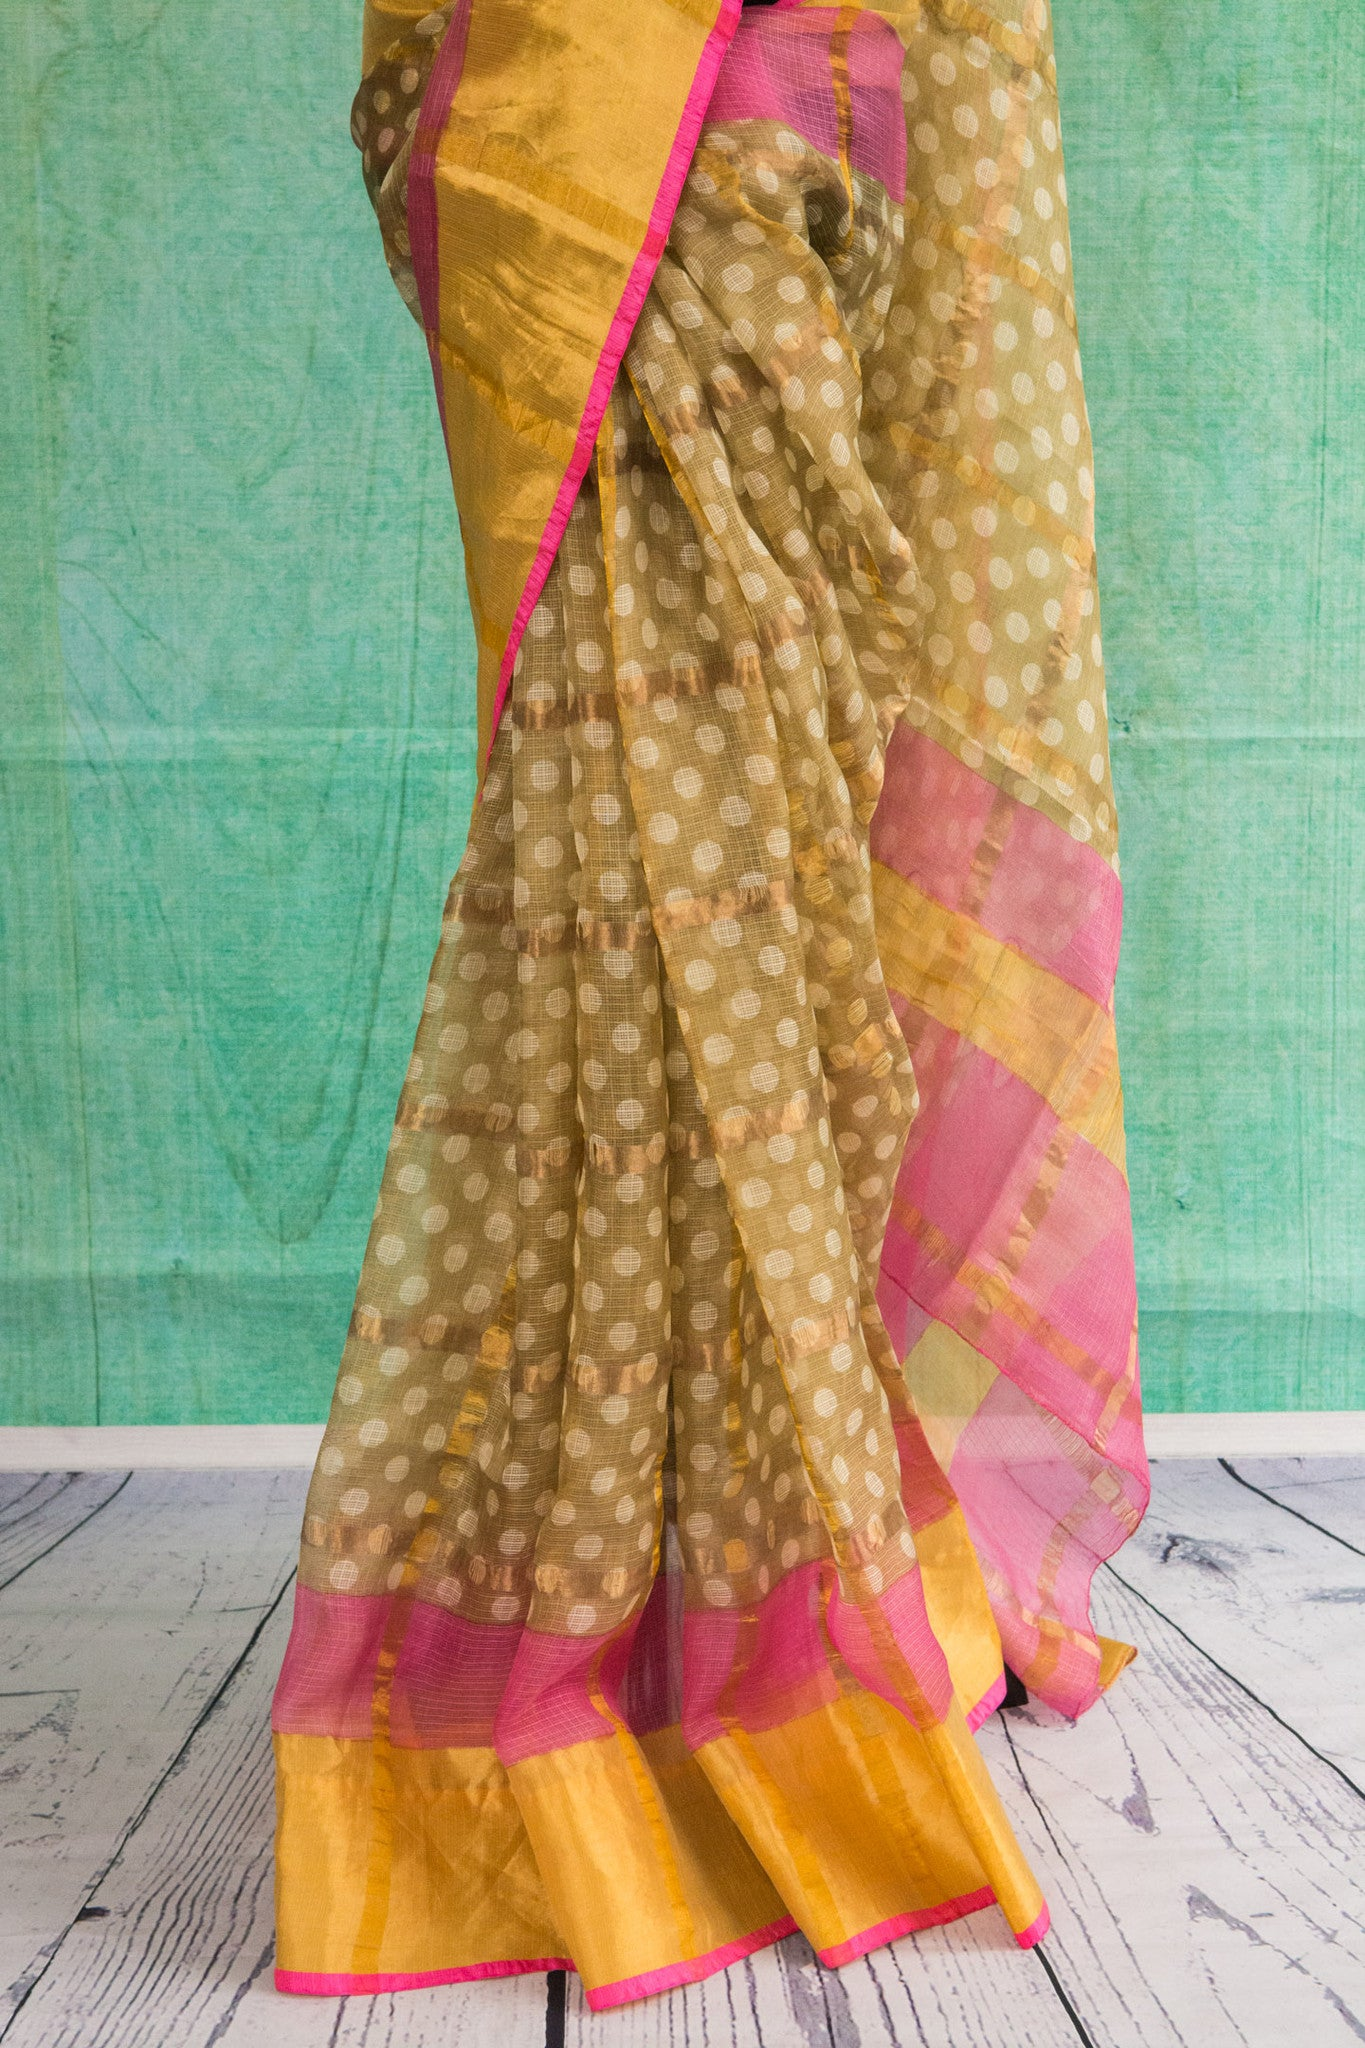 90c087 Traditional printed zari kota saree available at our Indian wear store in USA. The yellow saree with pops of pink and gold is perfect for pujas and festive occasions. Buy this polka dotted saree at Pure Elegance.